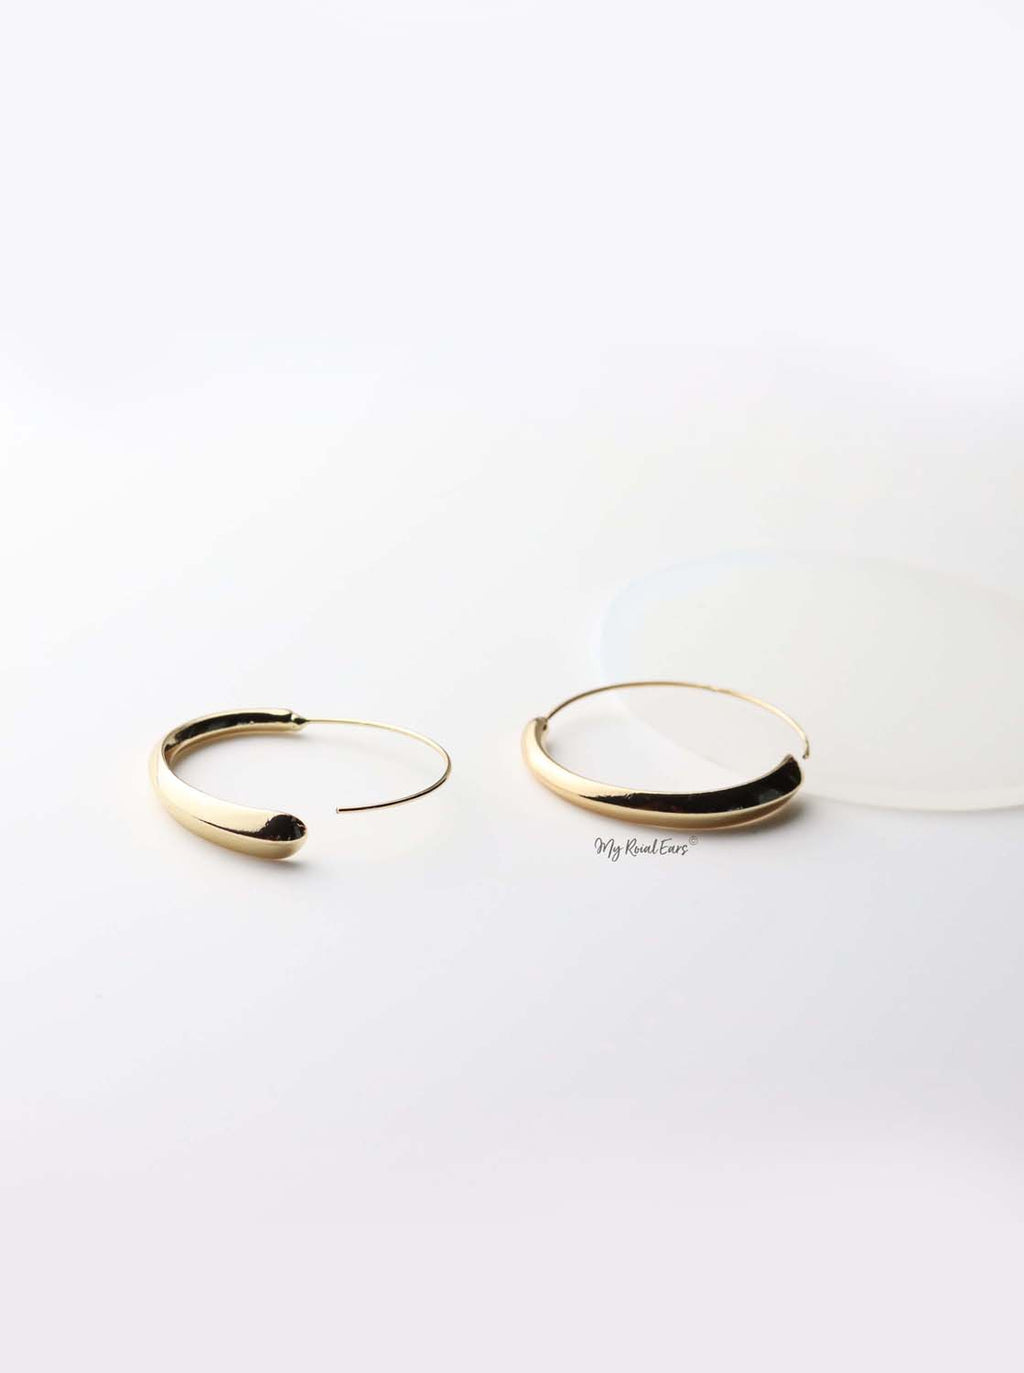 Adrasteia - gold plated thin geometric circle earrings - My Roial Ears LTD